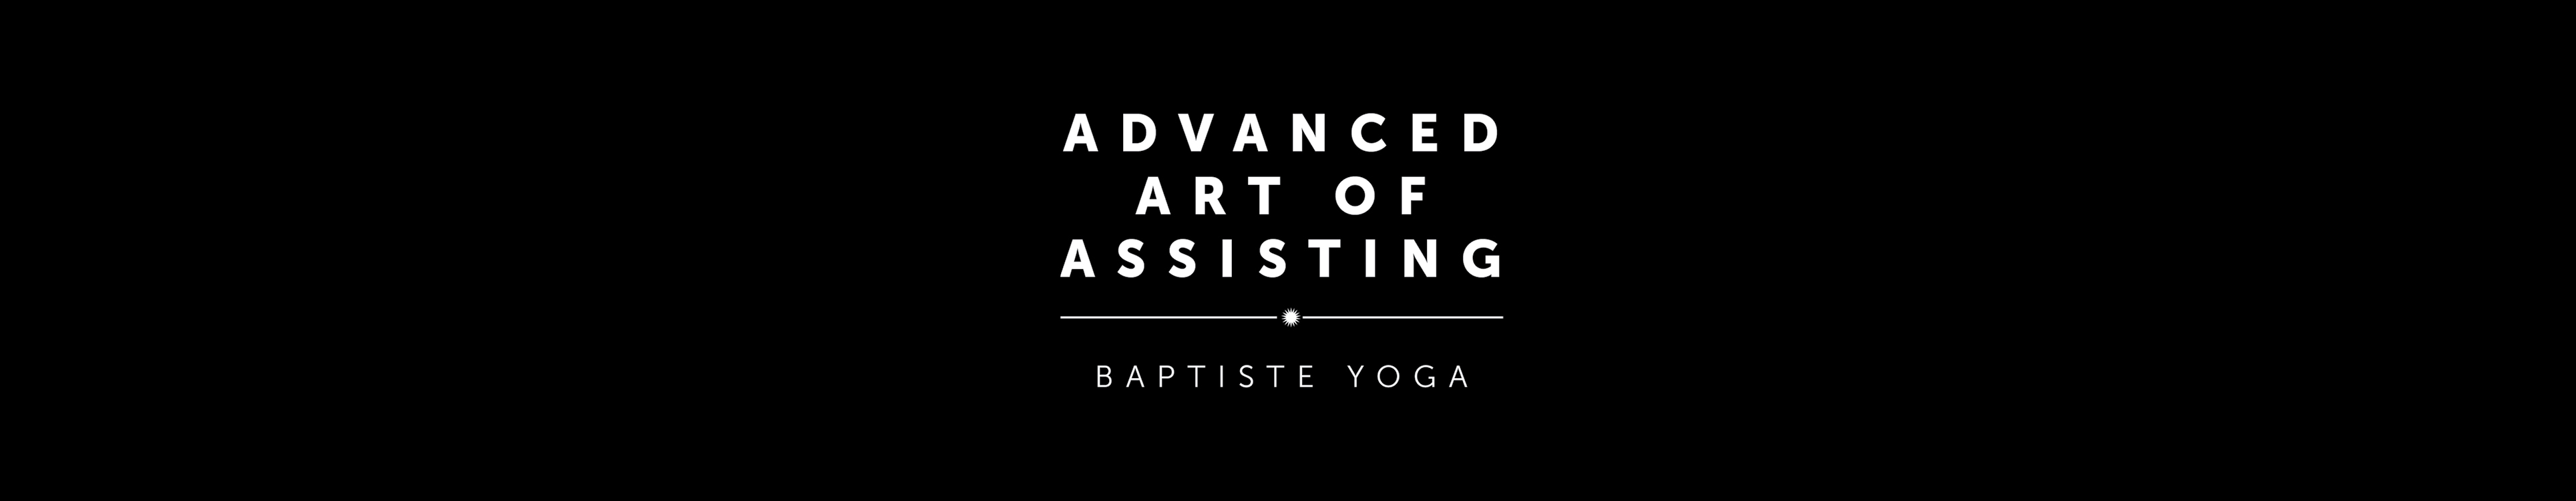 Divine Power Yoga | Advanced Art of Assisting